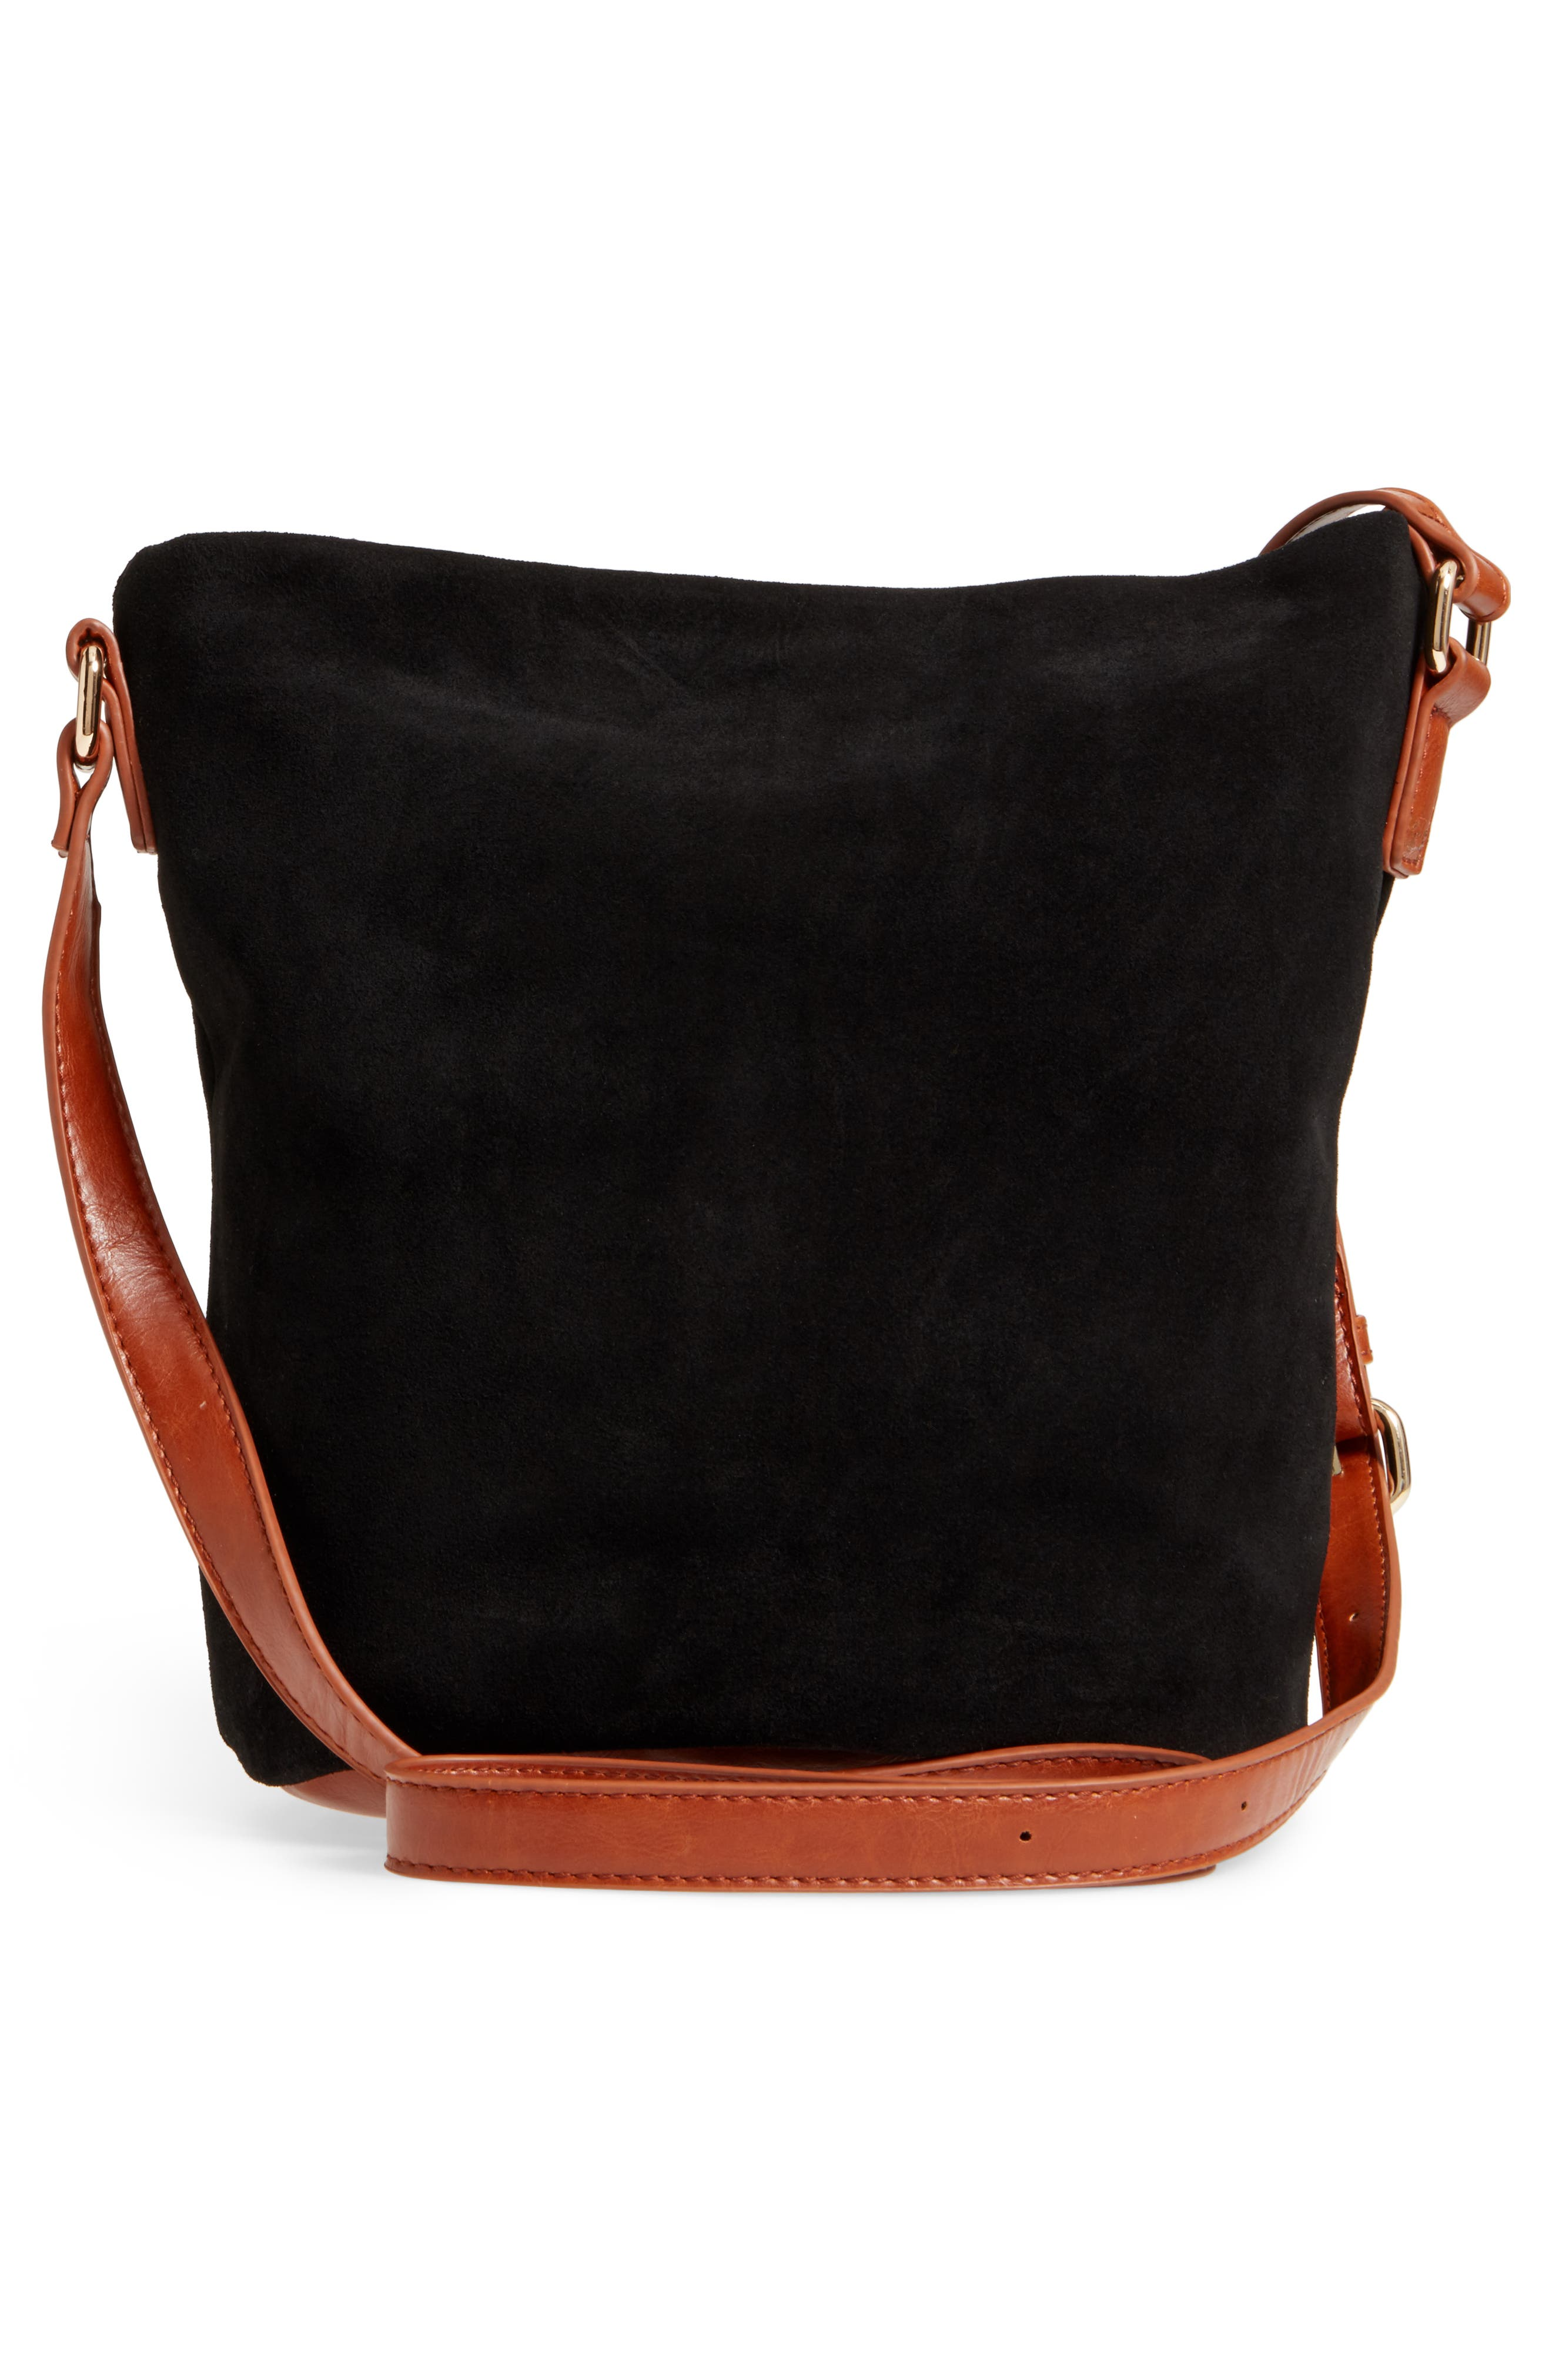 Lana Slouchy Suede Crossbody Bag,                             Alternate thumbnail 3, color,                             200